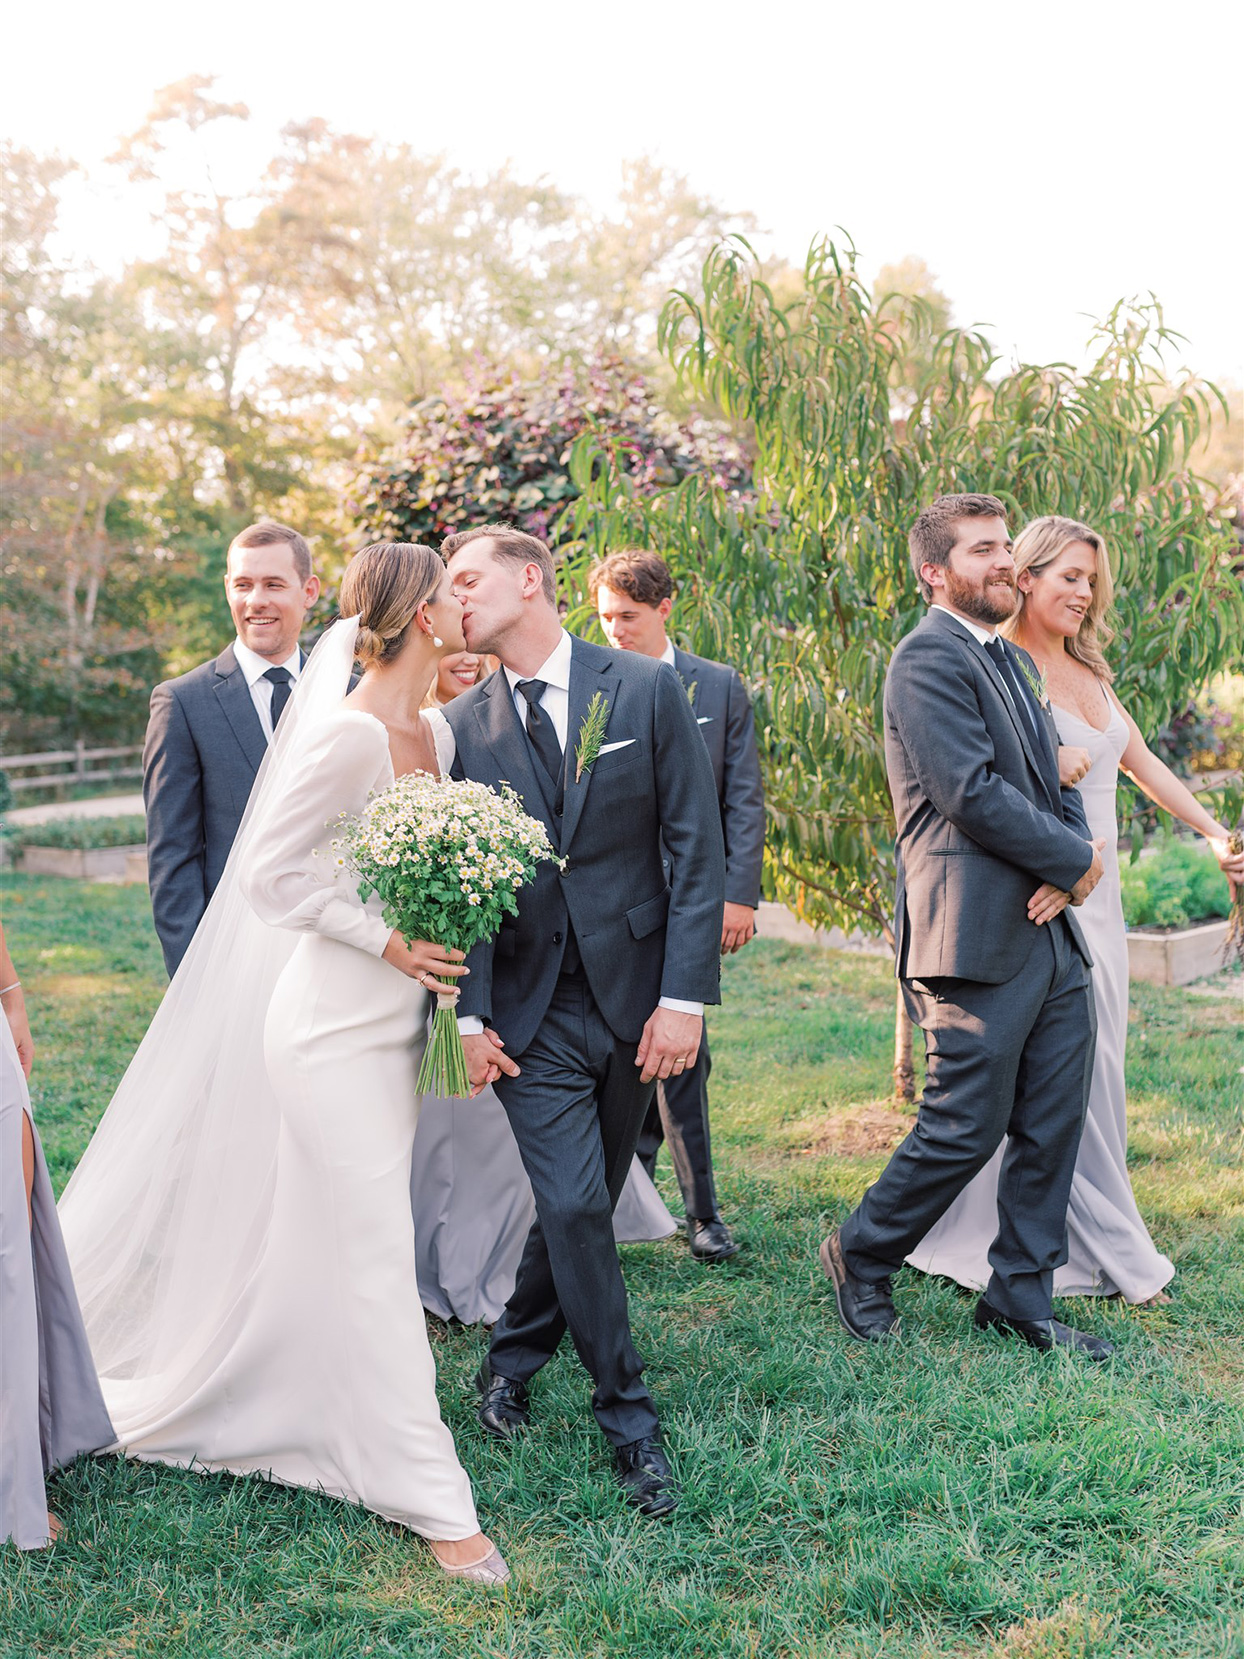 samantha cody wedding couple kissing and walking with party